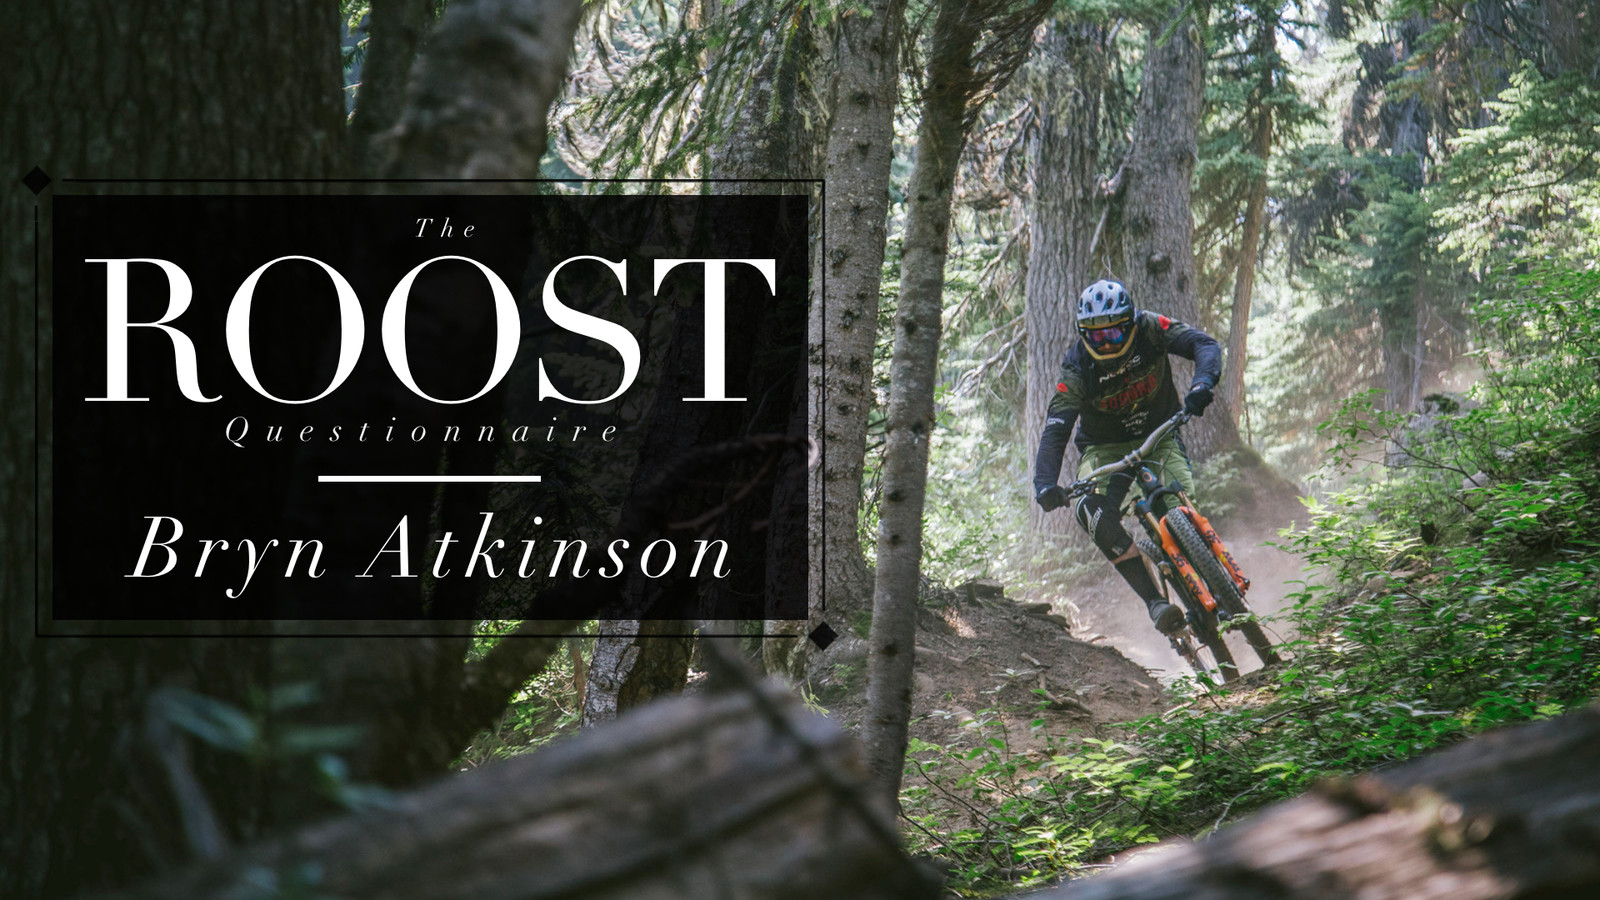 The ROOST Questionnaire #6, Bryn Atkinson